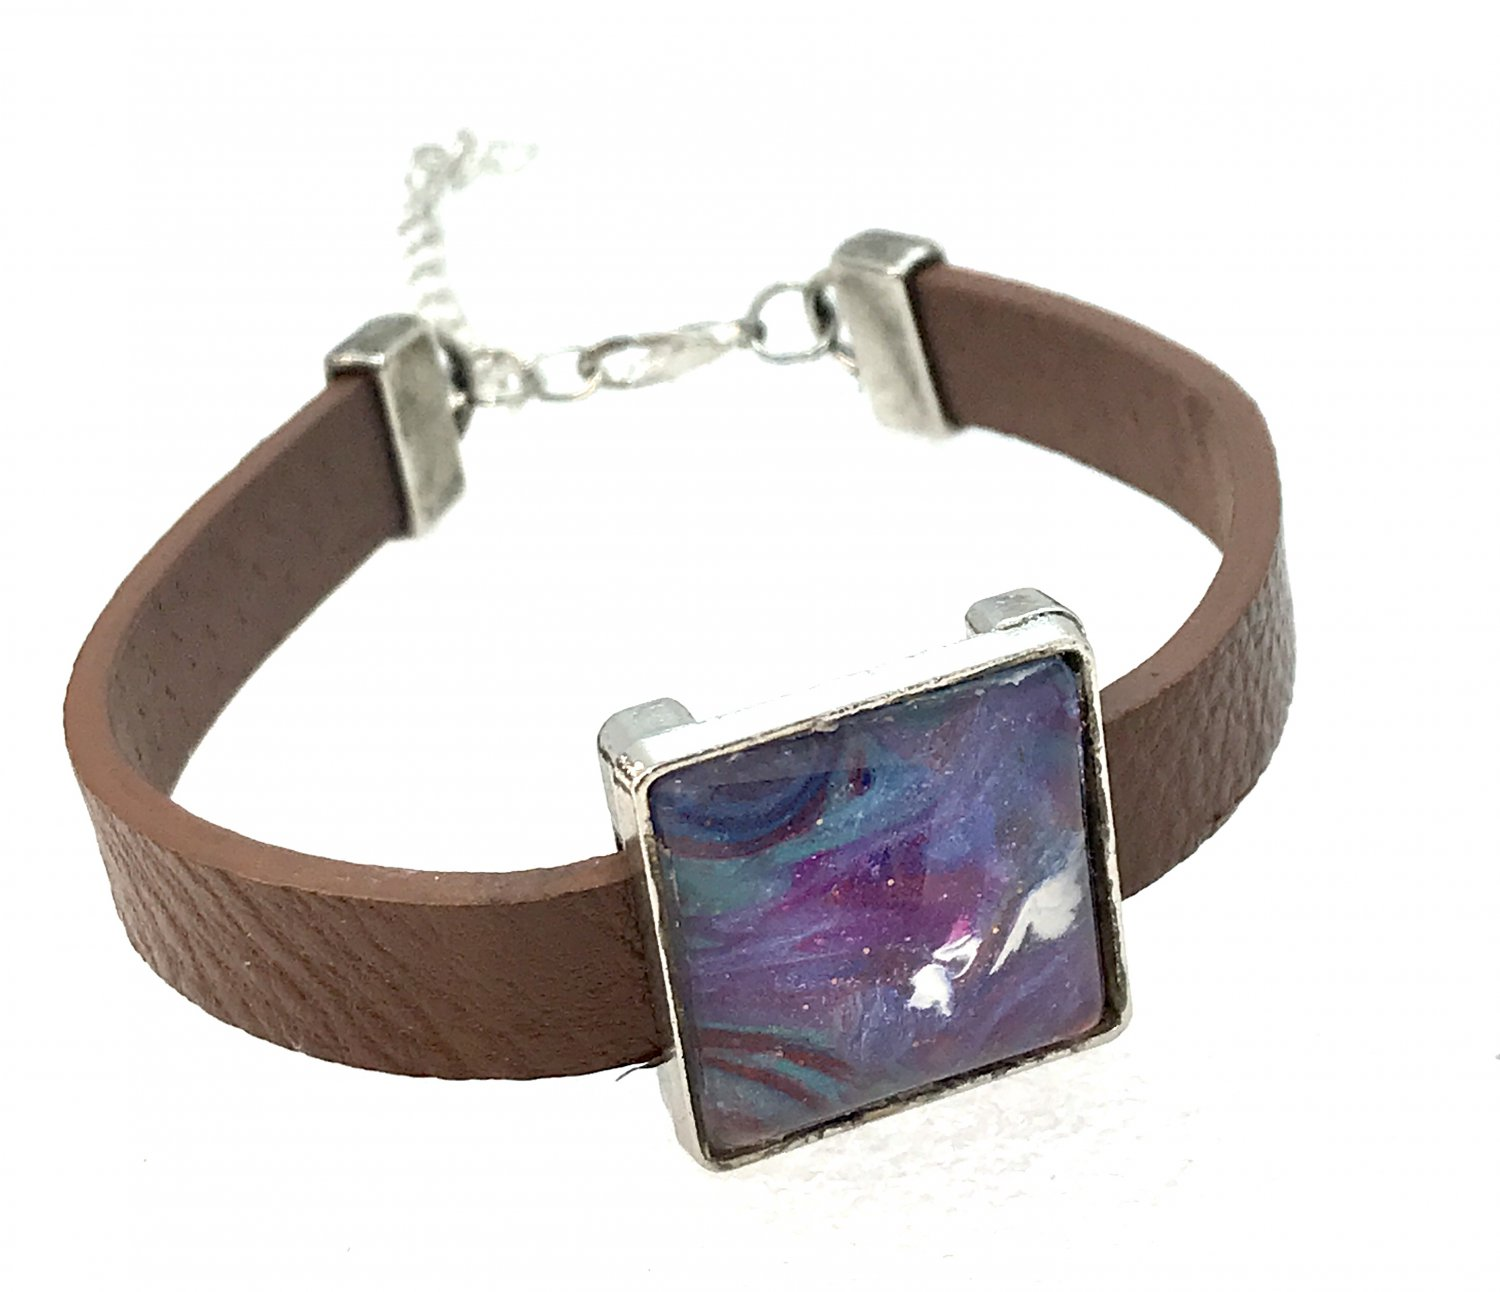 Bracelet leather with handmade square dome